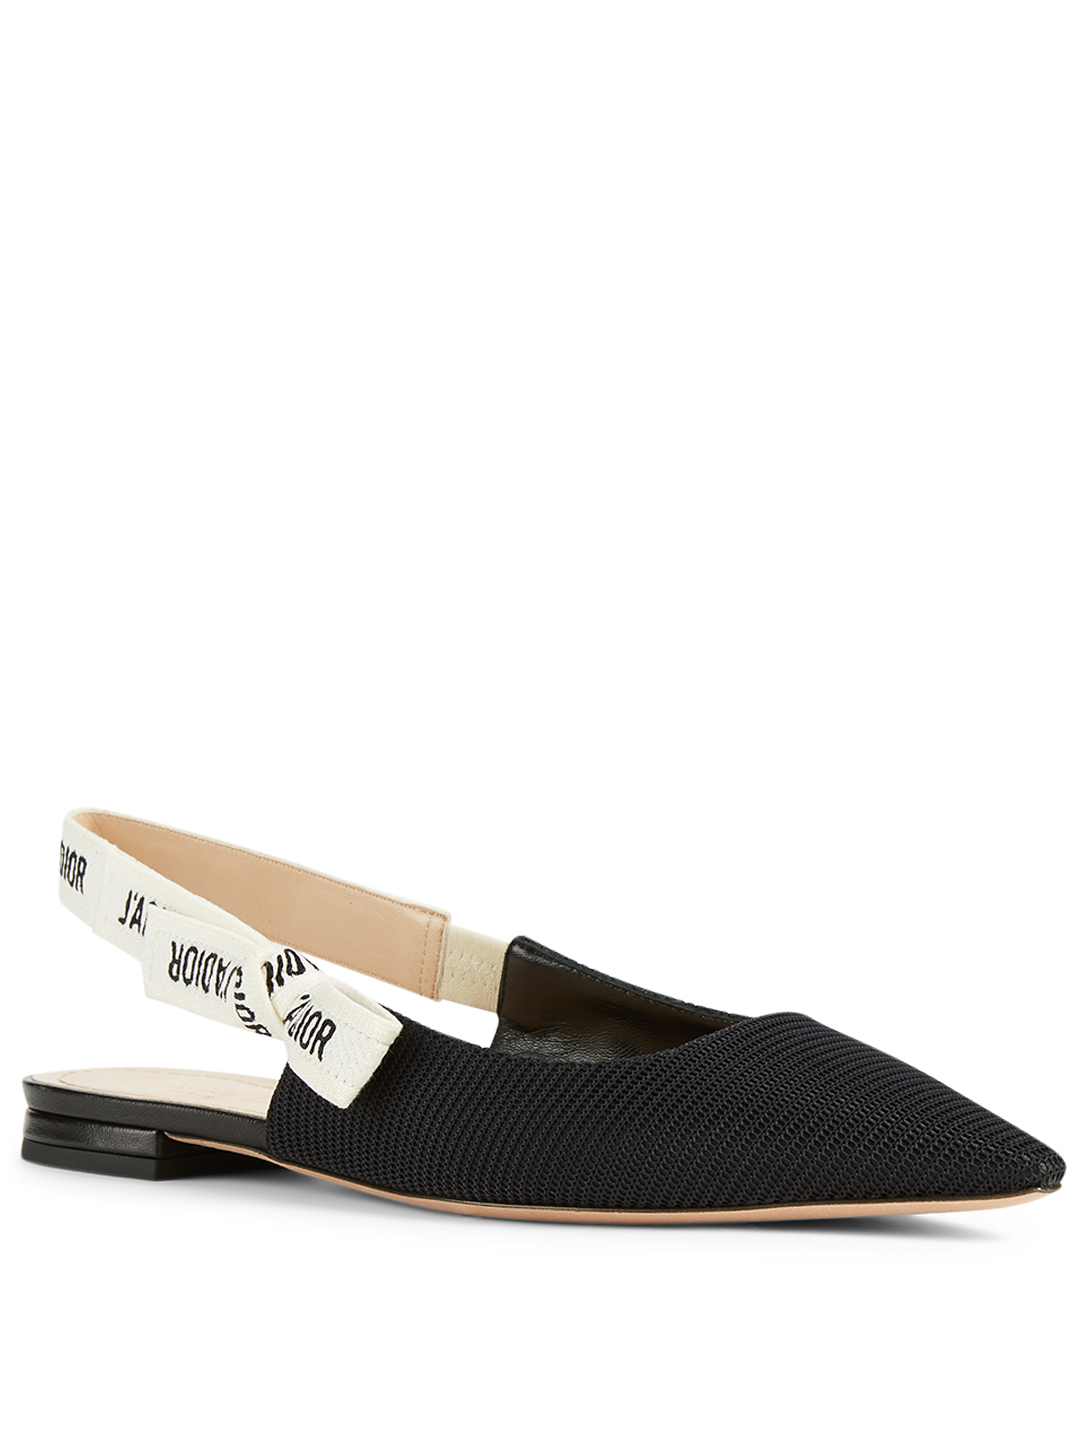 DIOR J'Adior Technical Canvas Slingback Ballet Flats Women's Black